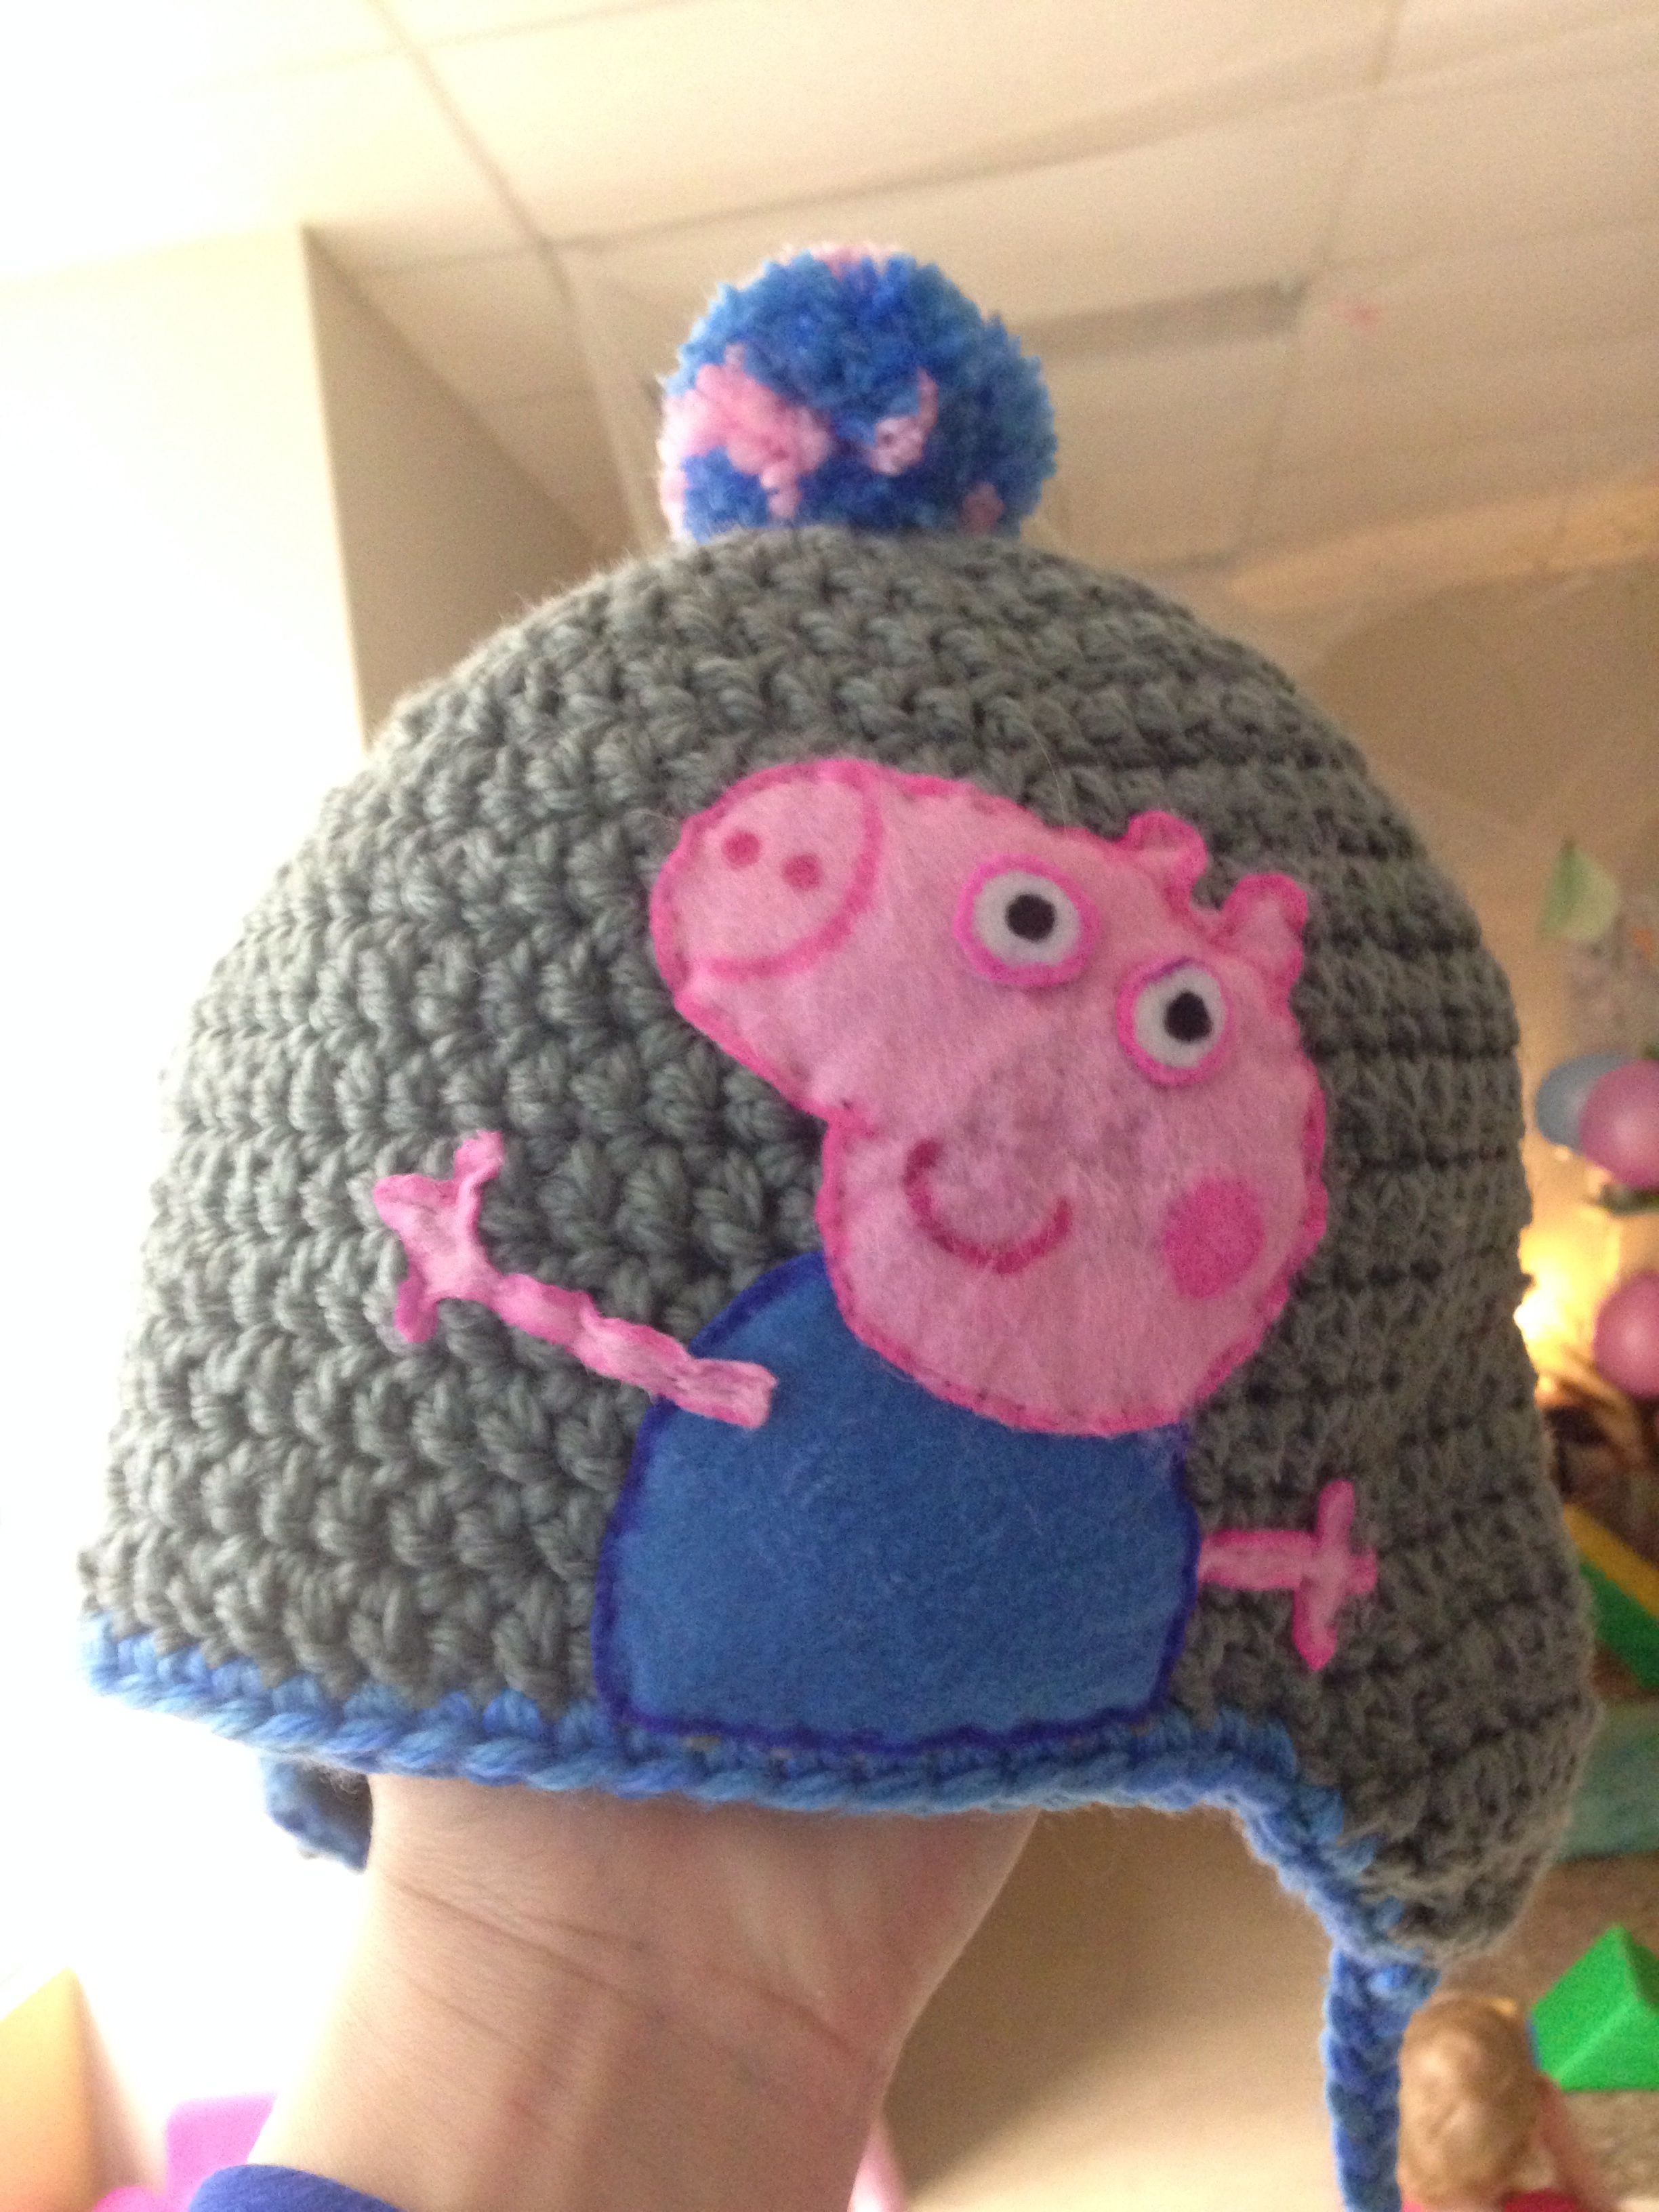 714dbe623 George crochet beanie, hat, Peppa Pig, wool, homemade | For baby ...